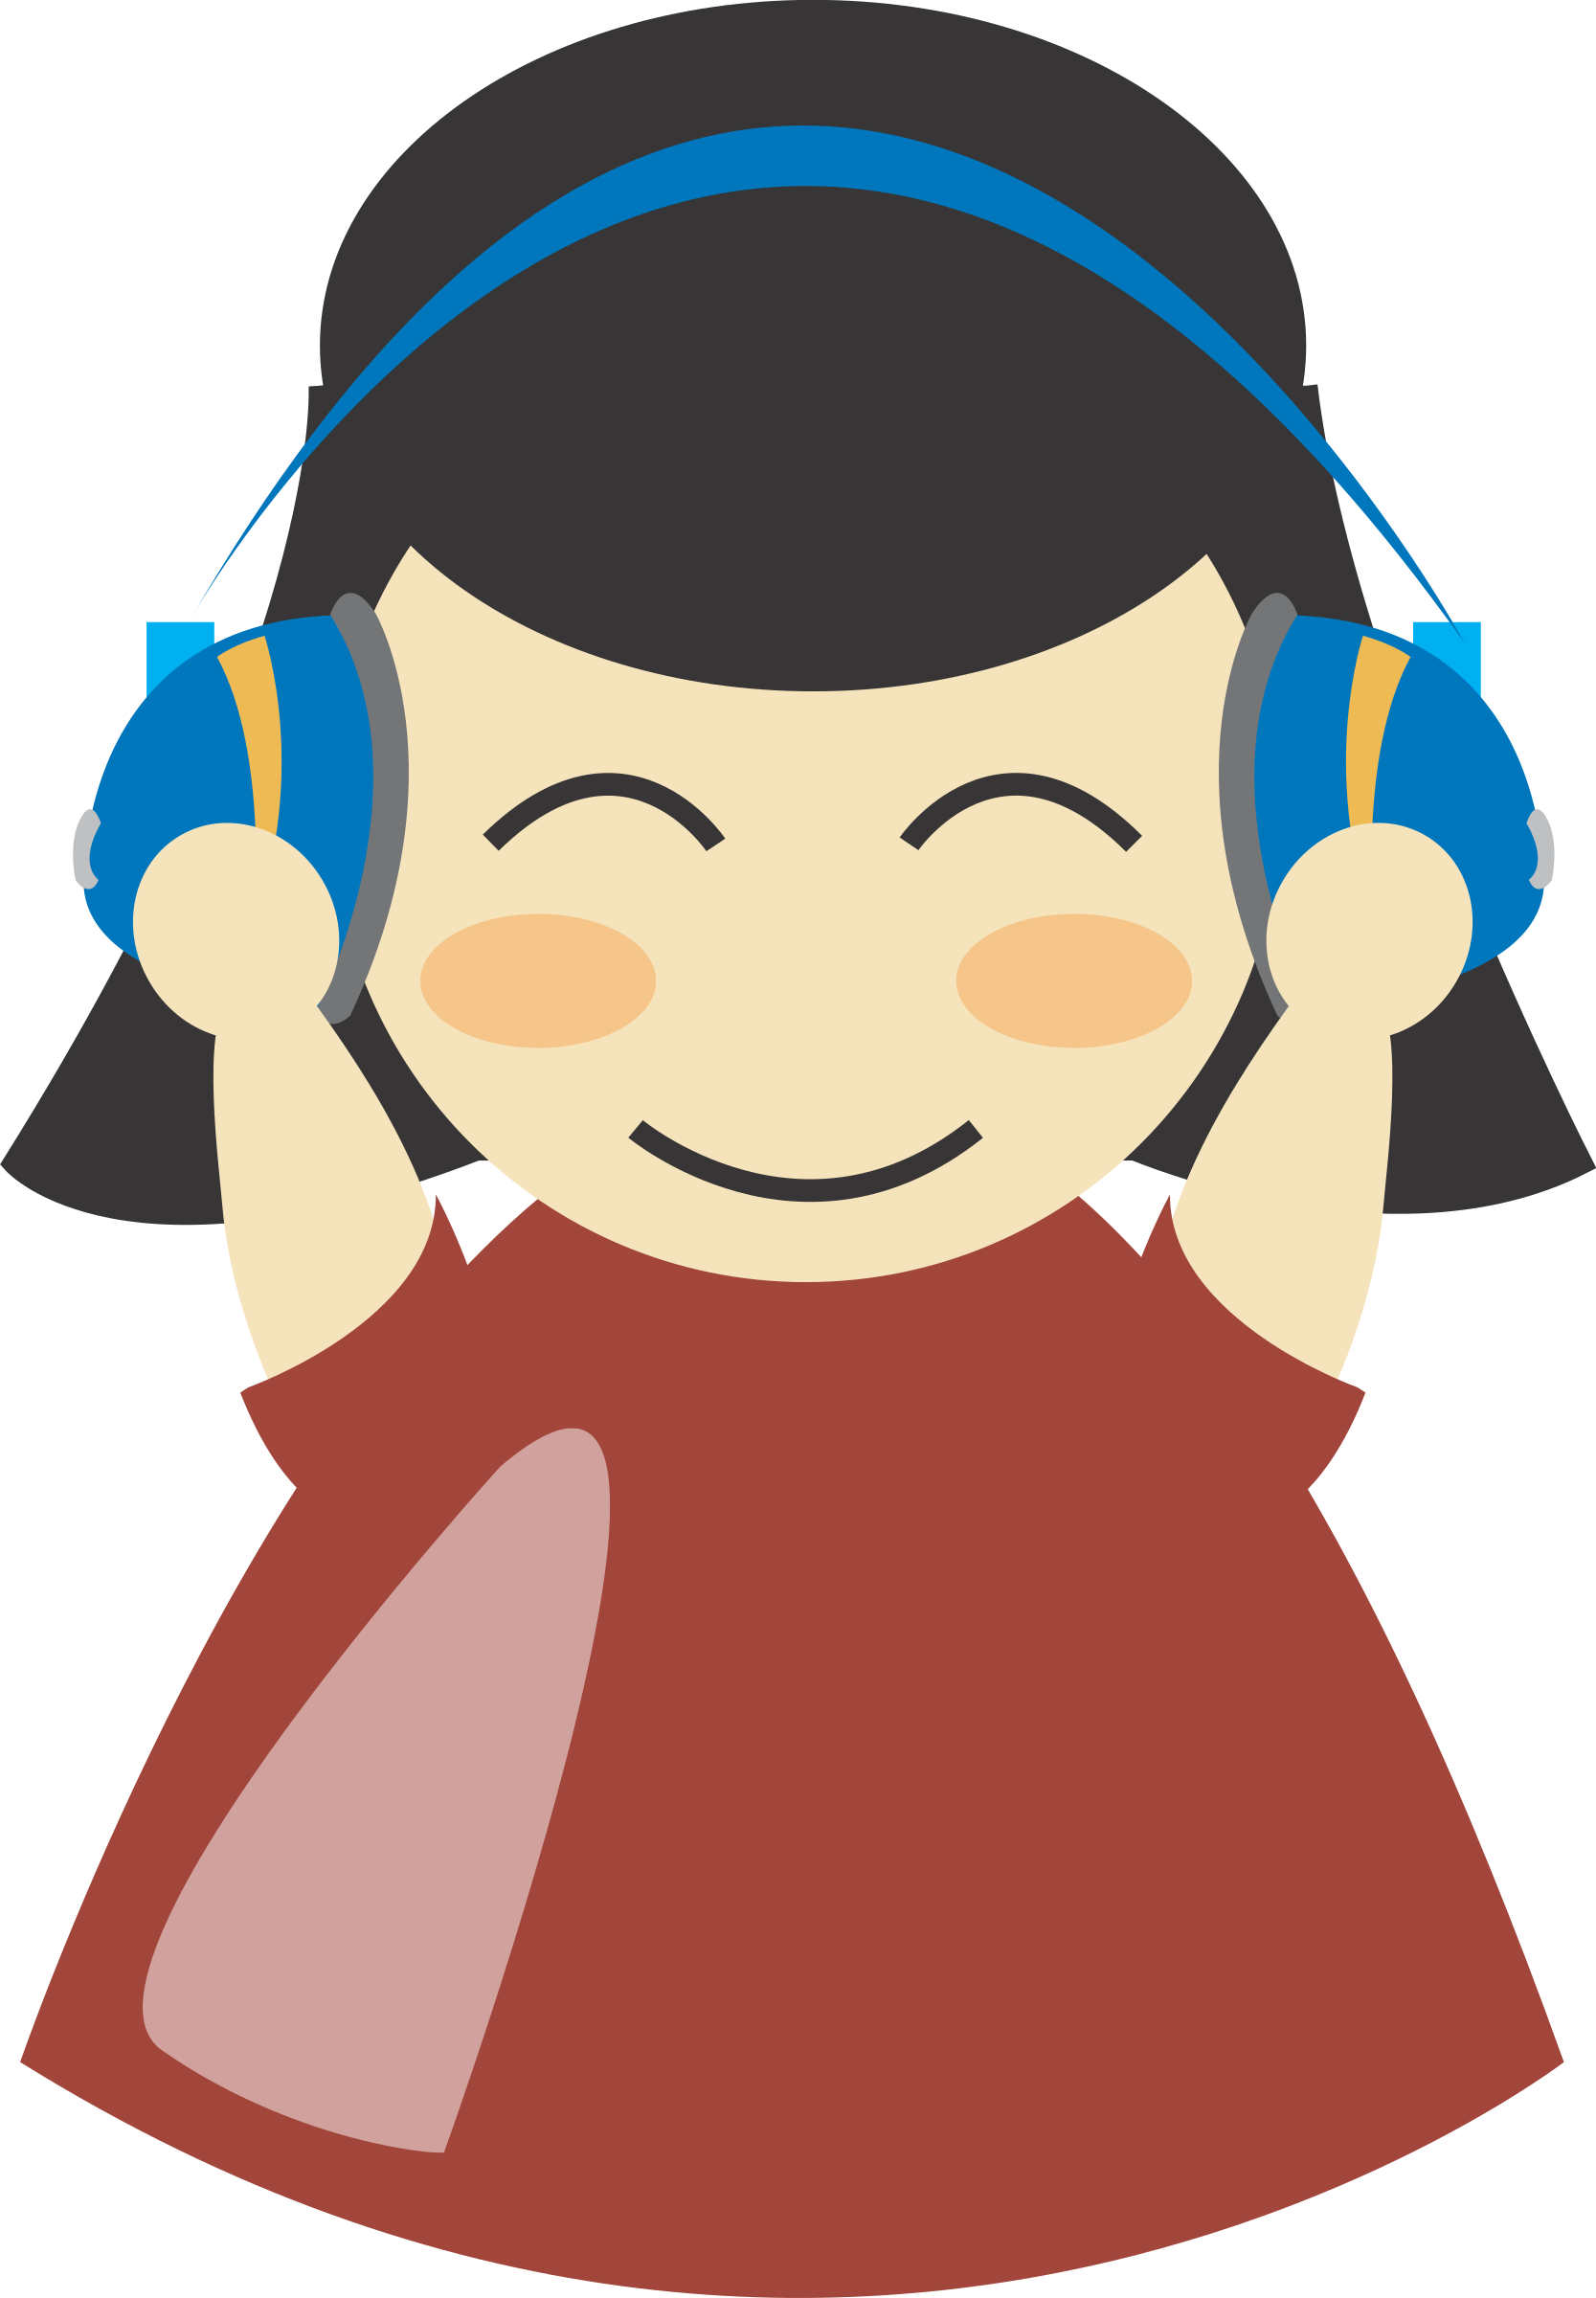 Noise clipart music With Girl IMAGE headphone4 Clipart